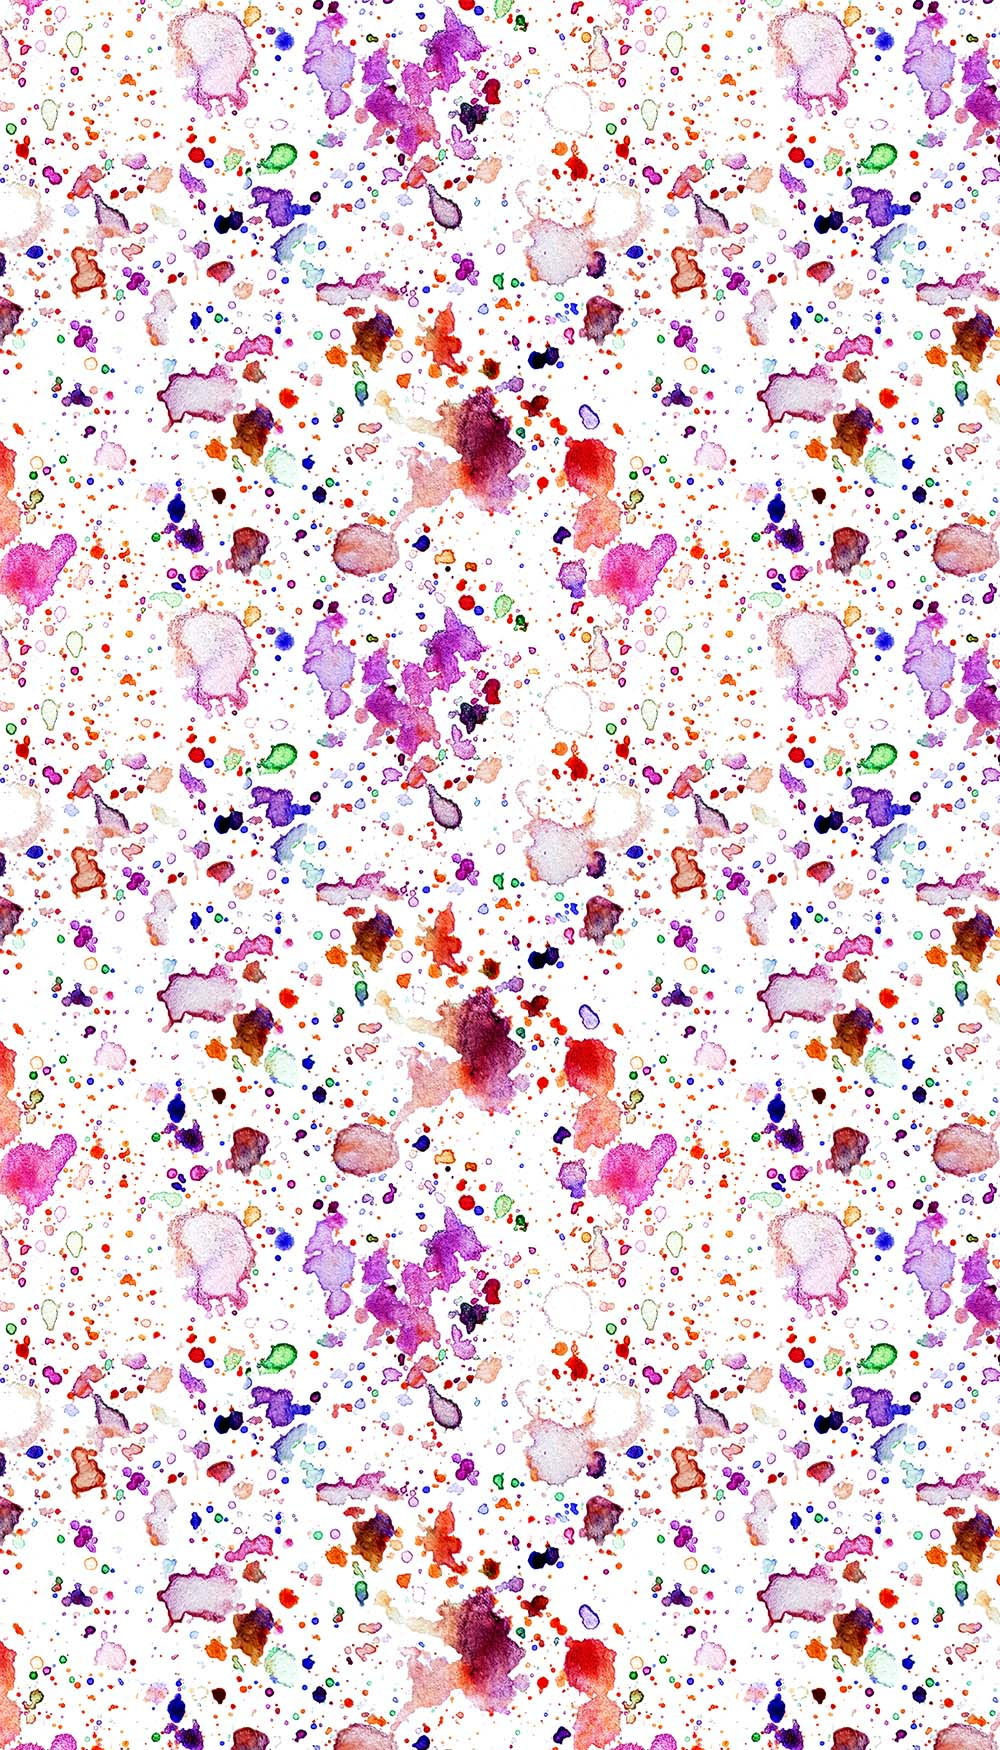 Explosion surface pattern design by Rebecca Johnstone